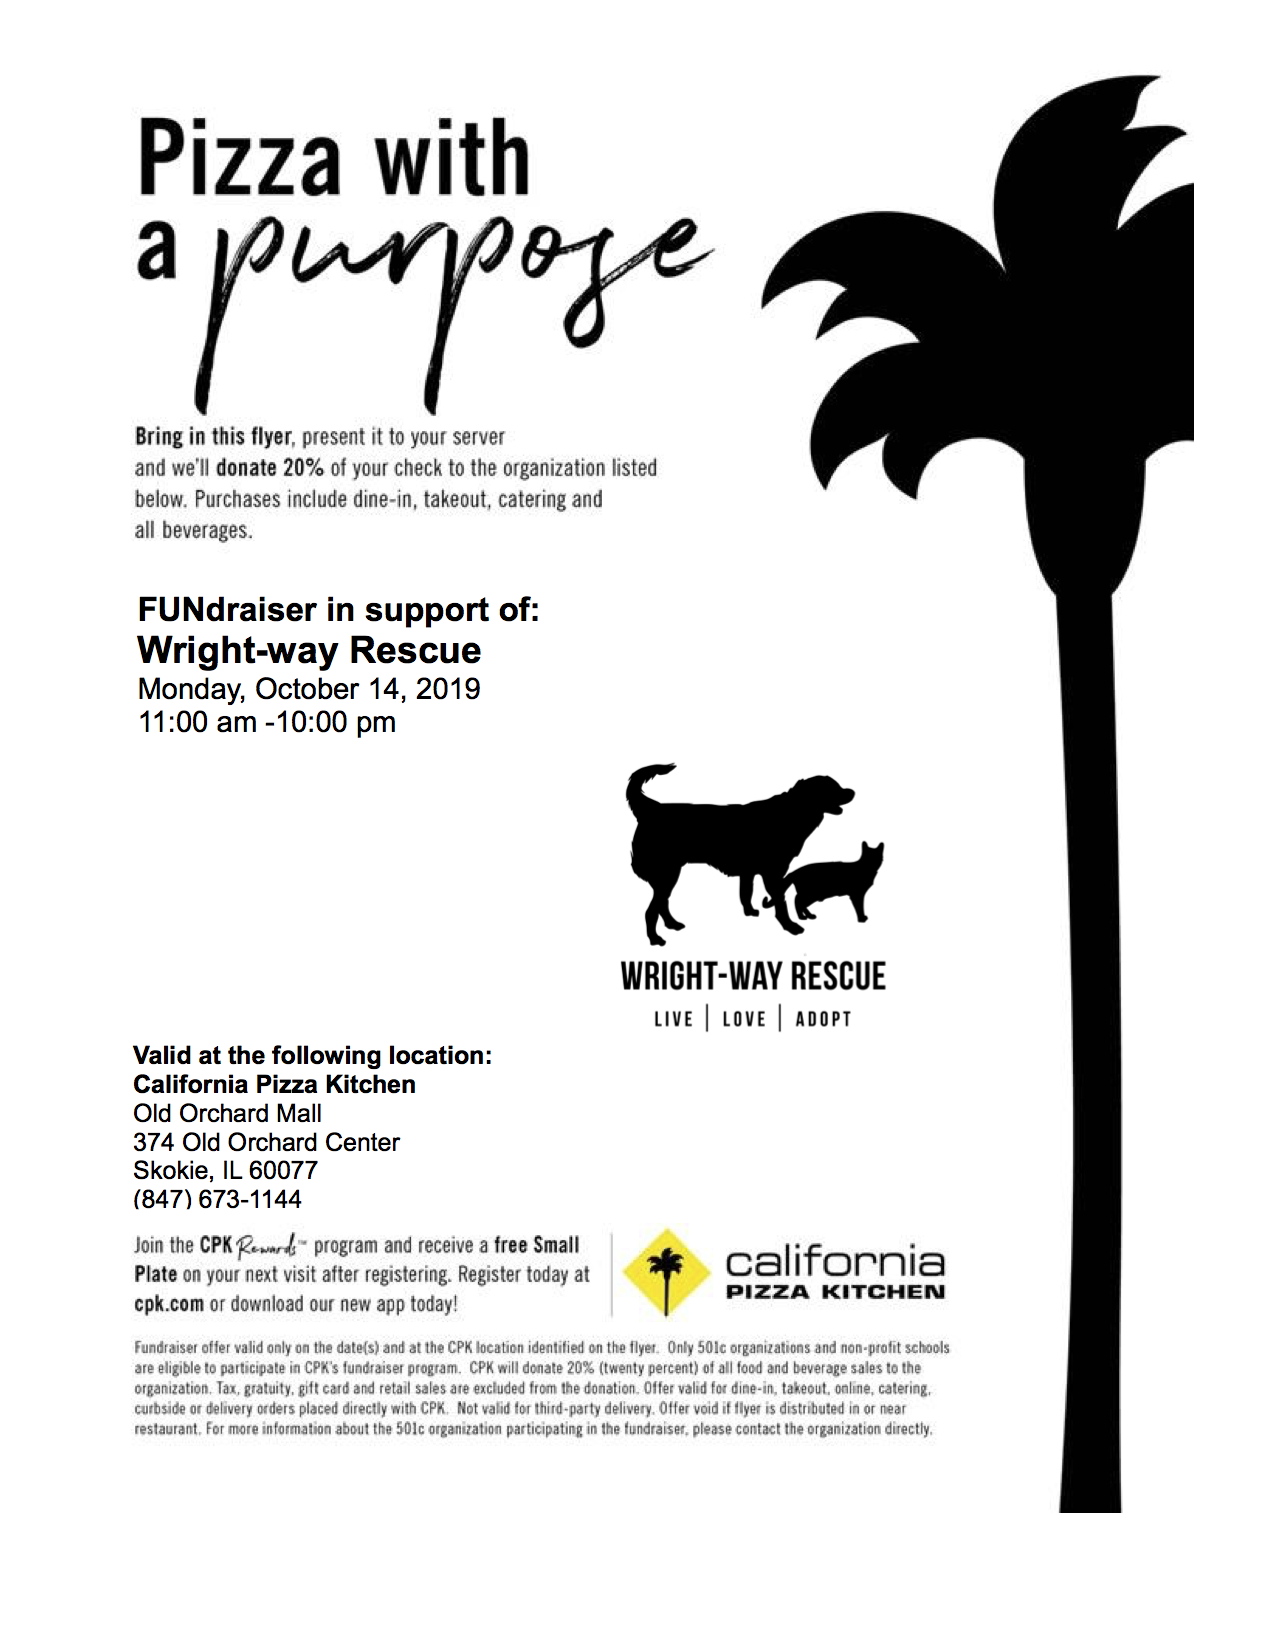 CPK FUNdraiser Flyer.Wright-way Rescue.10.14.2019..png